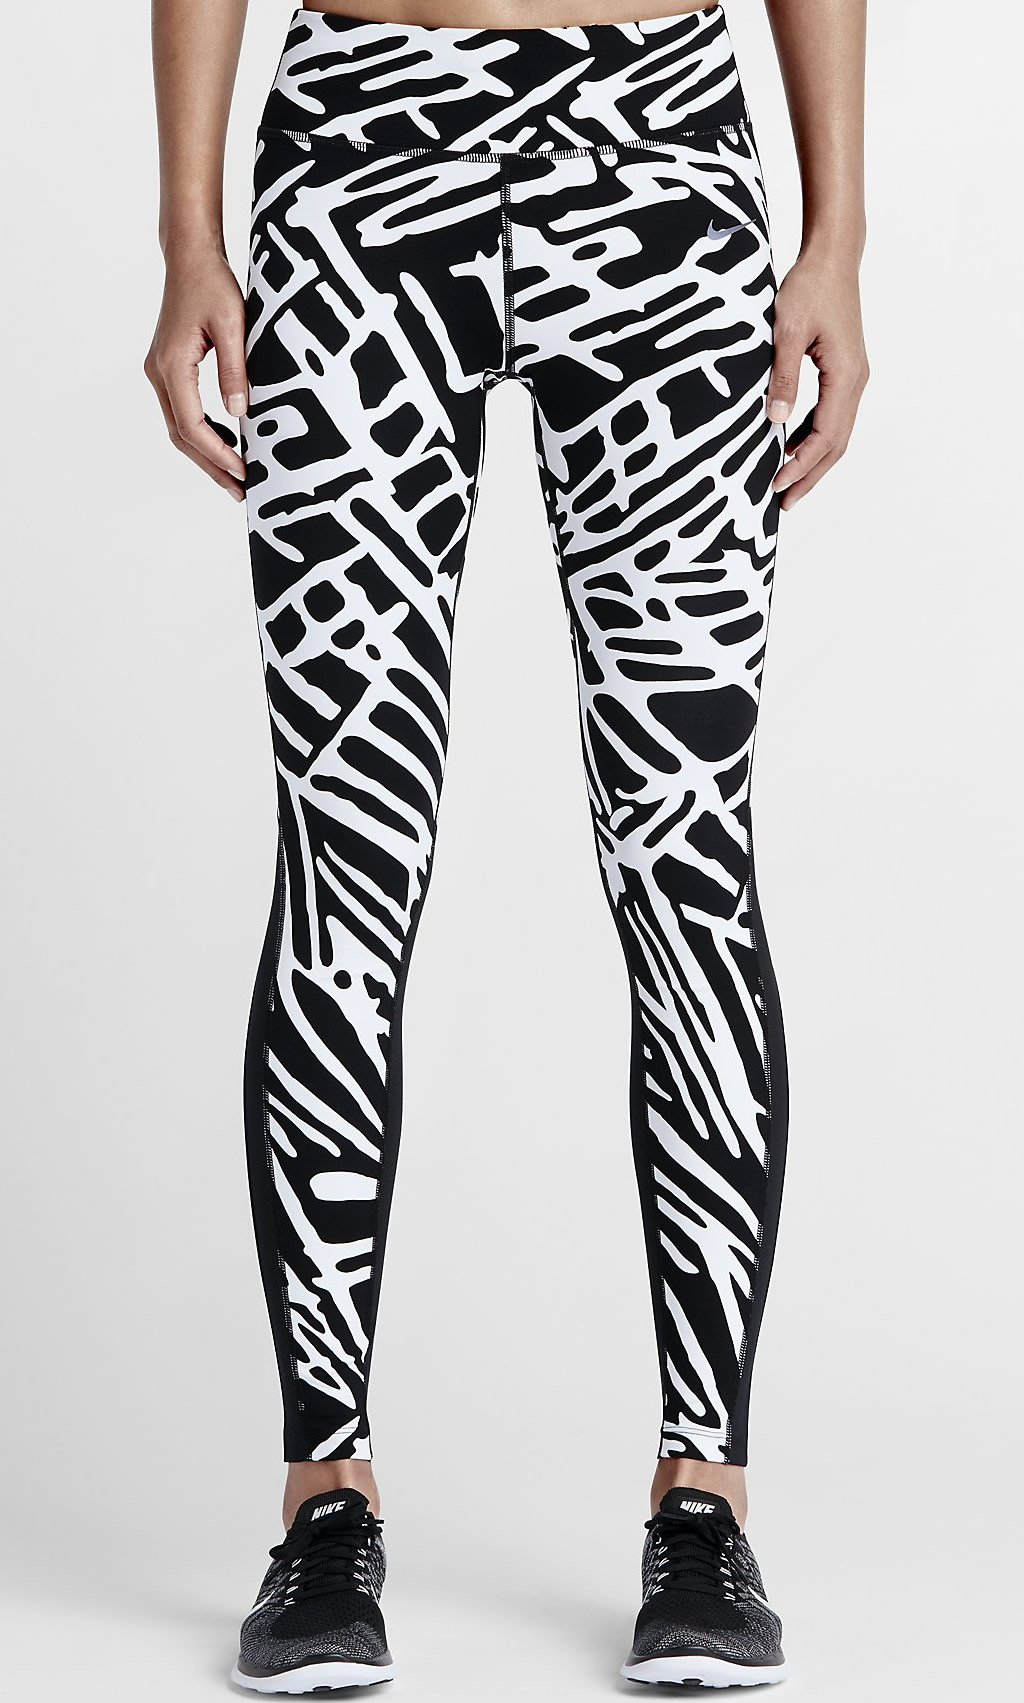 Black Nike Palm Epic Lux Women's Running Tights